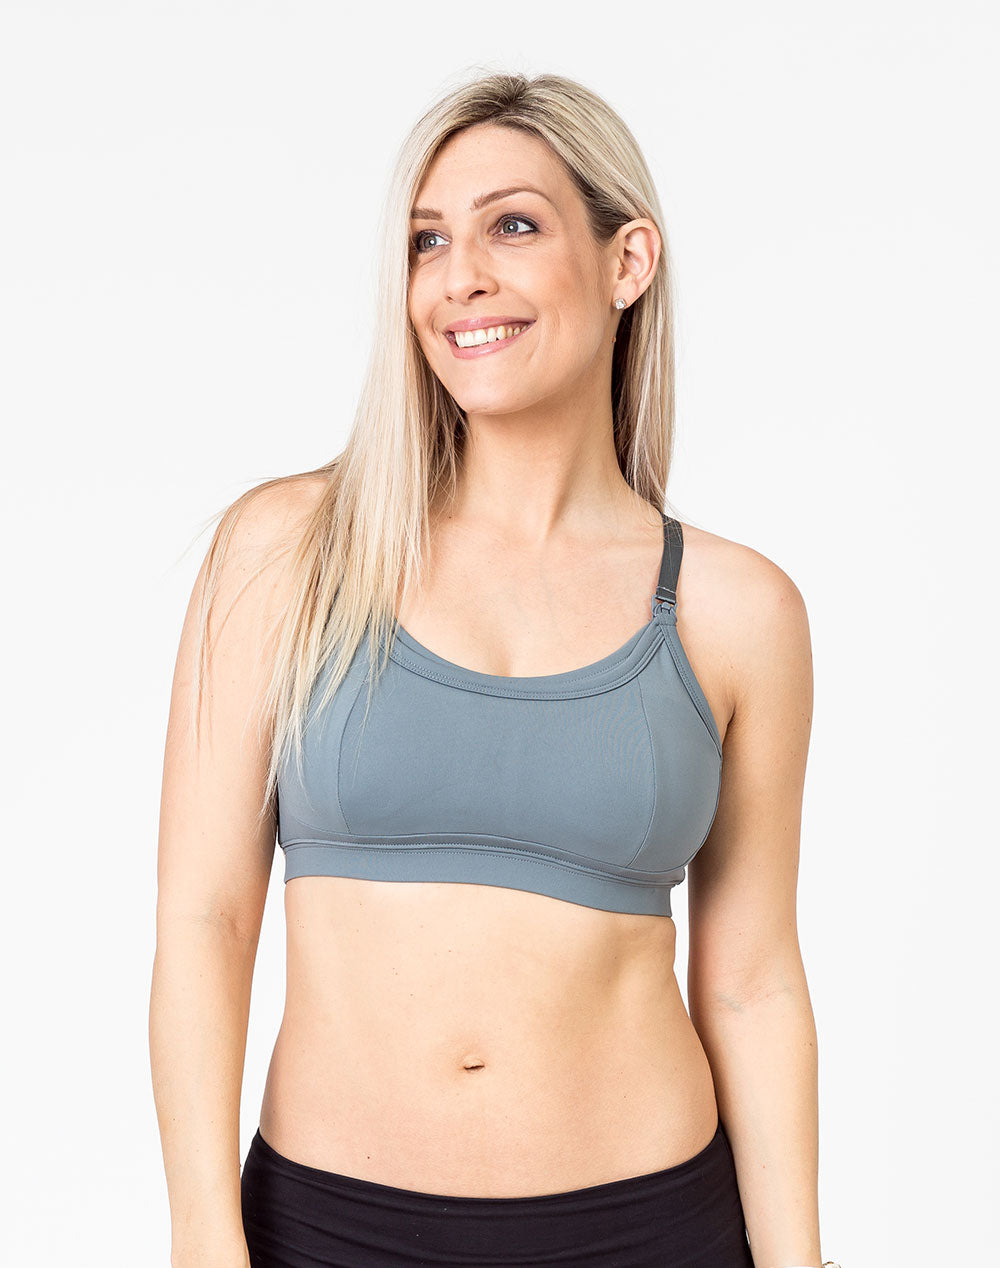 Racerback Nursing Bra - Everyday Bra Gray